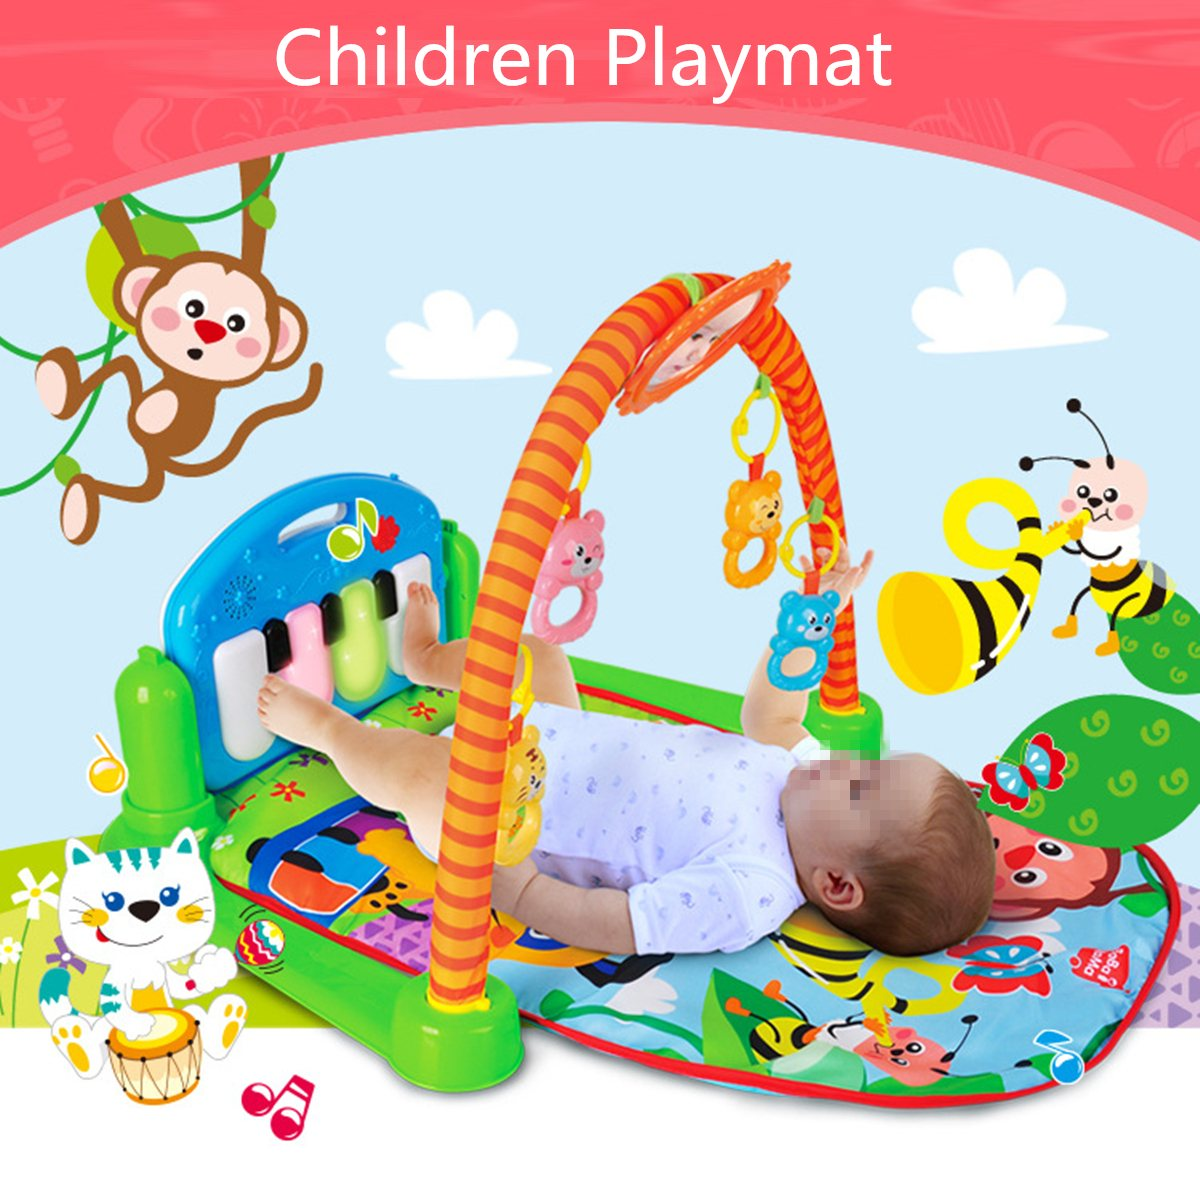 3 in 1 Rainforest Musical Lullaby Baby Activity Playmat Gym Toy Soft font b Play b